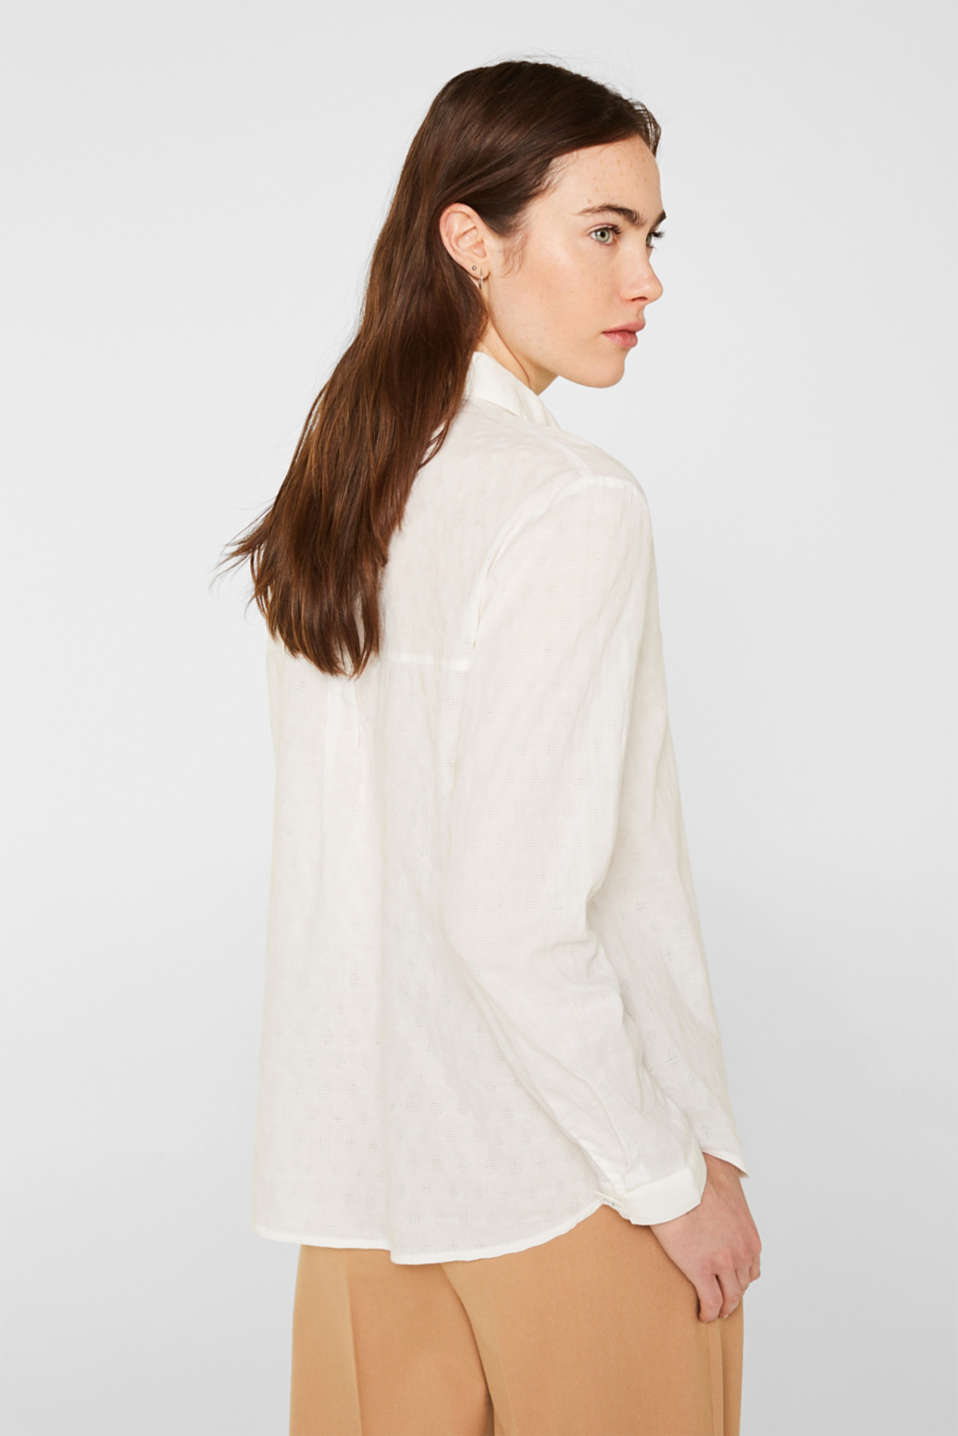 Blouse with a jacquard pattern, 100% cotton, OFF WHITE, detail image number 3